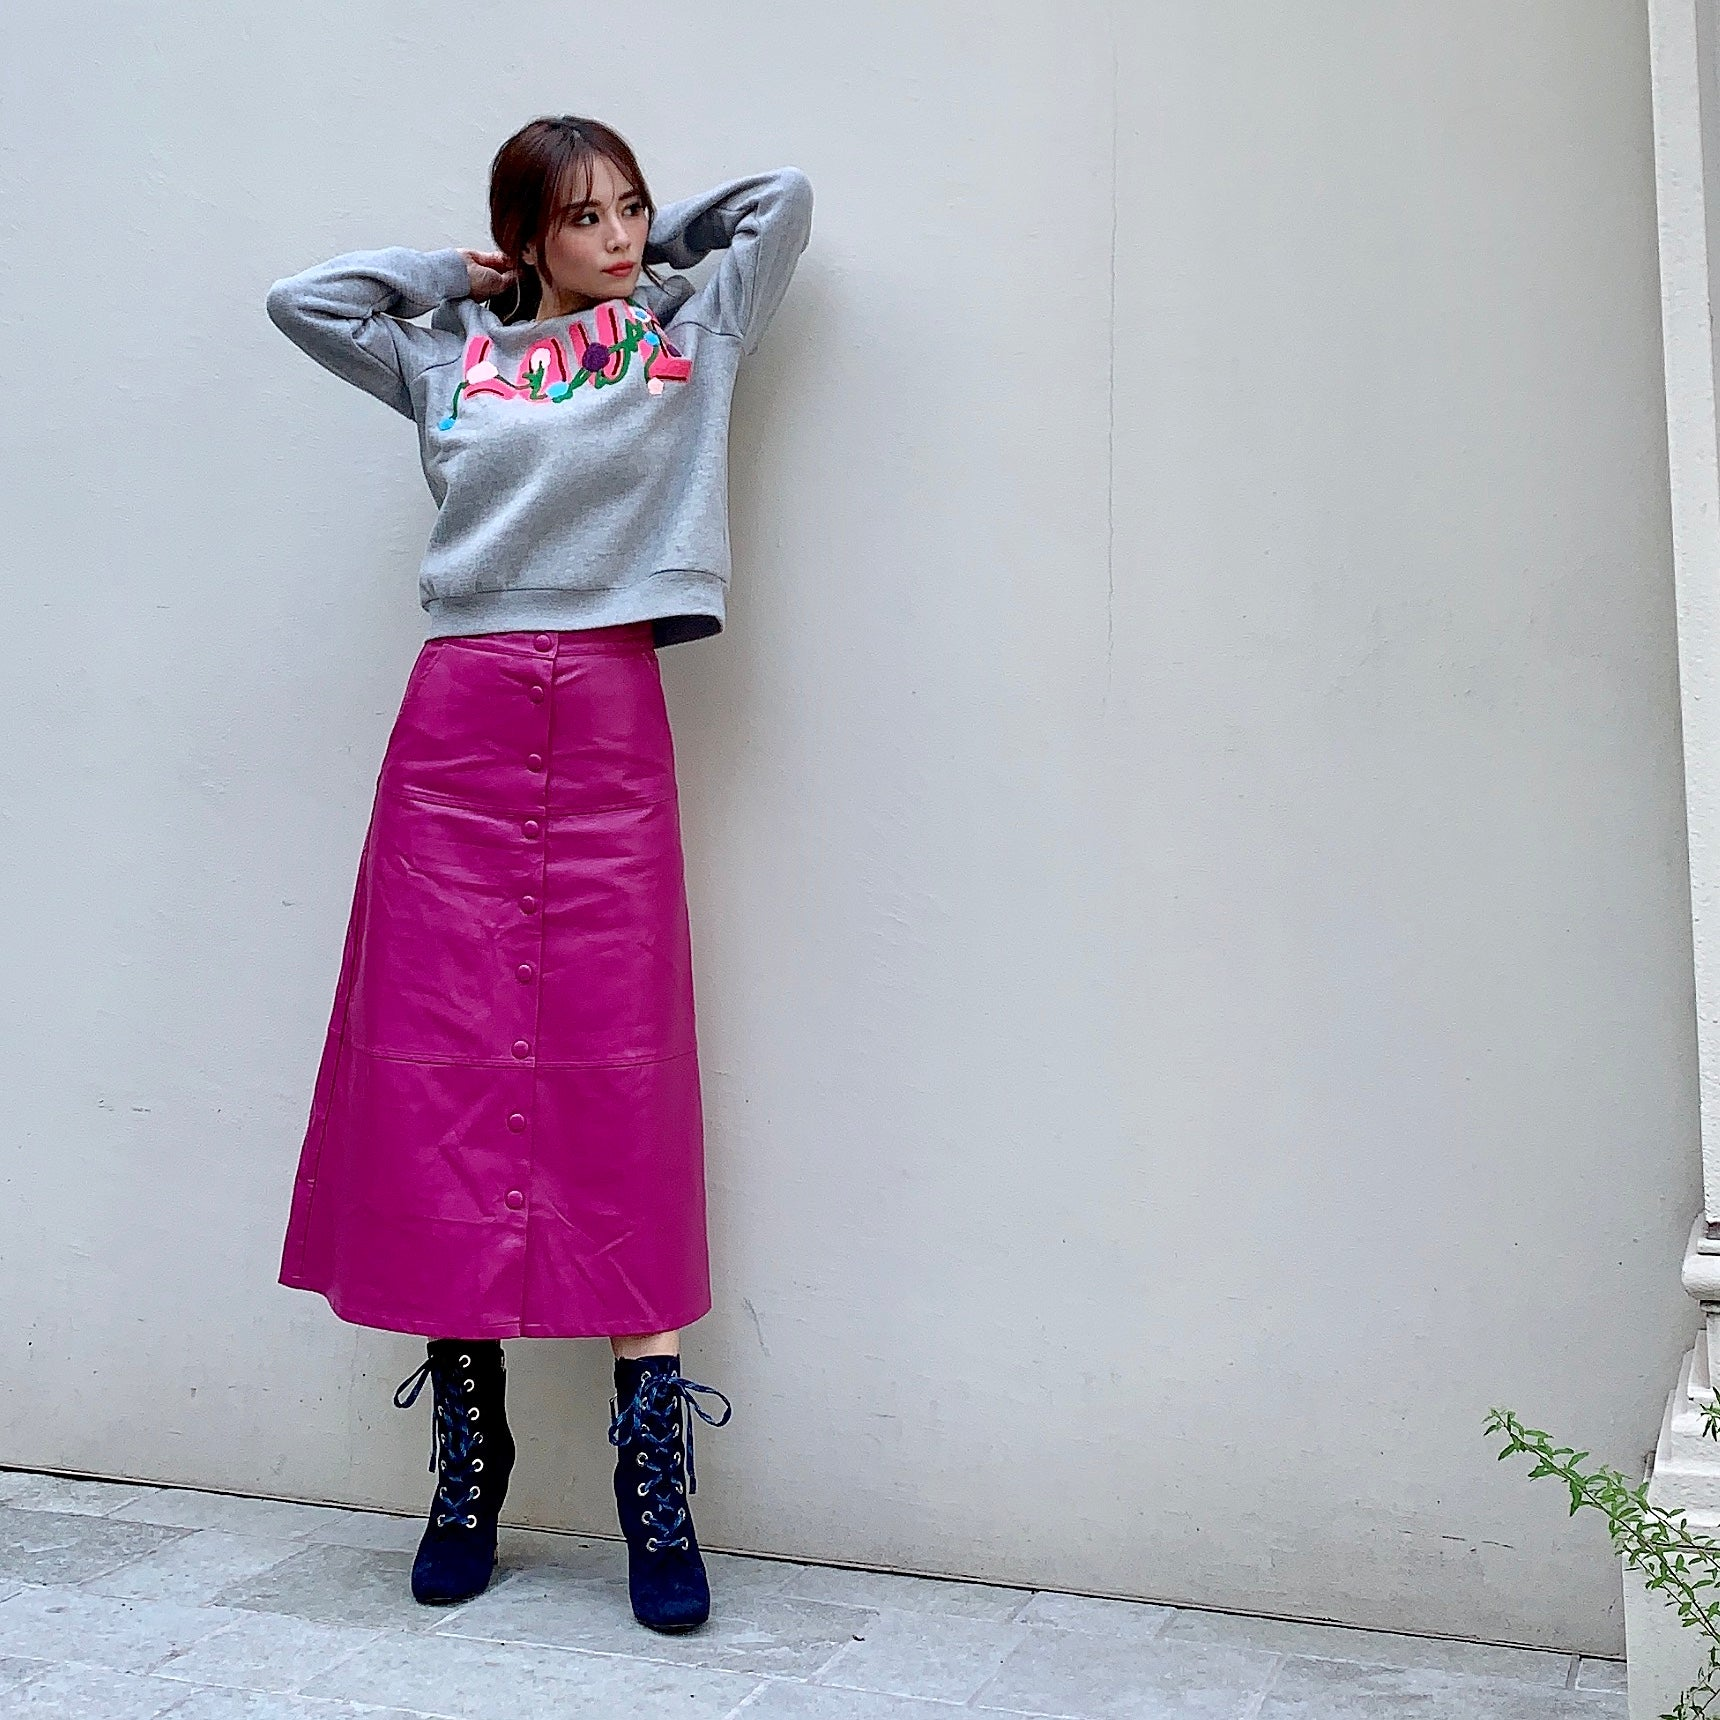 JM007 embroidered trainer × leather skirt - Just me(ジャスト・ミー)